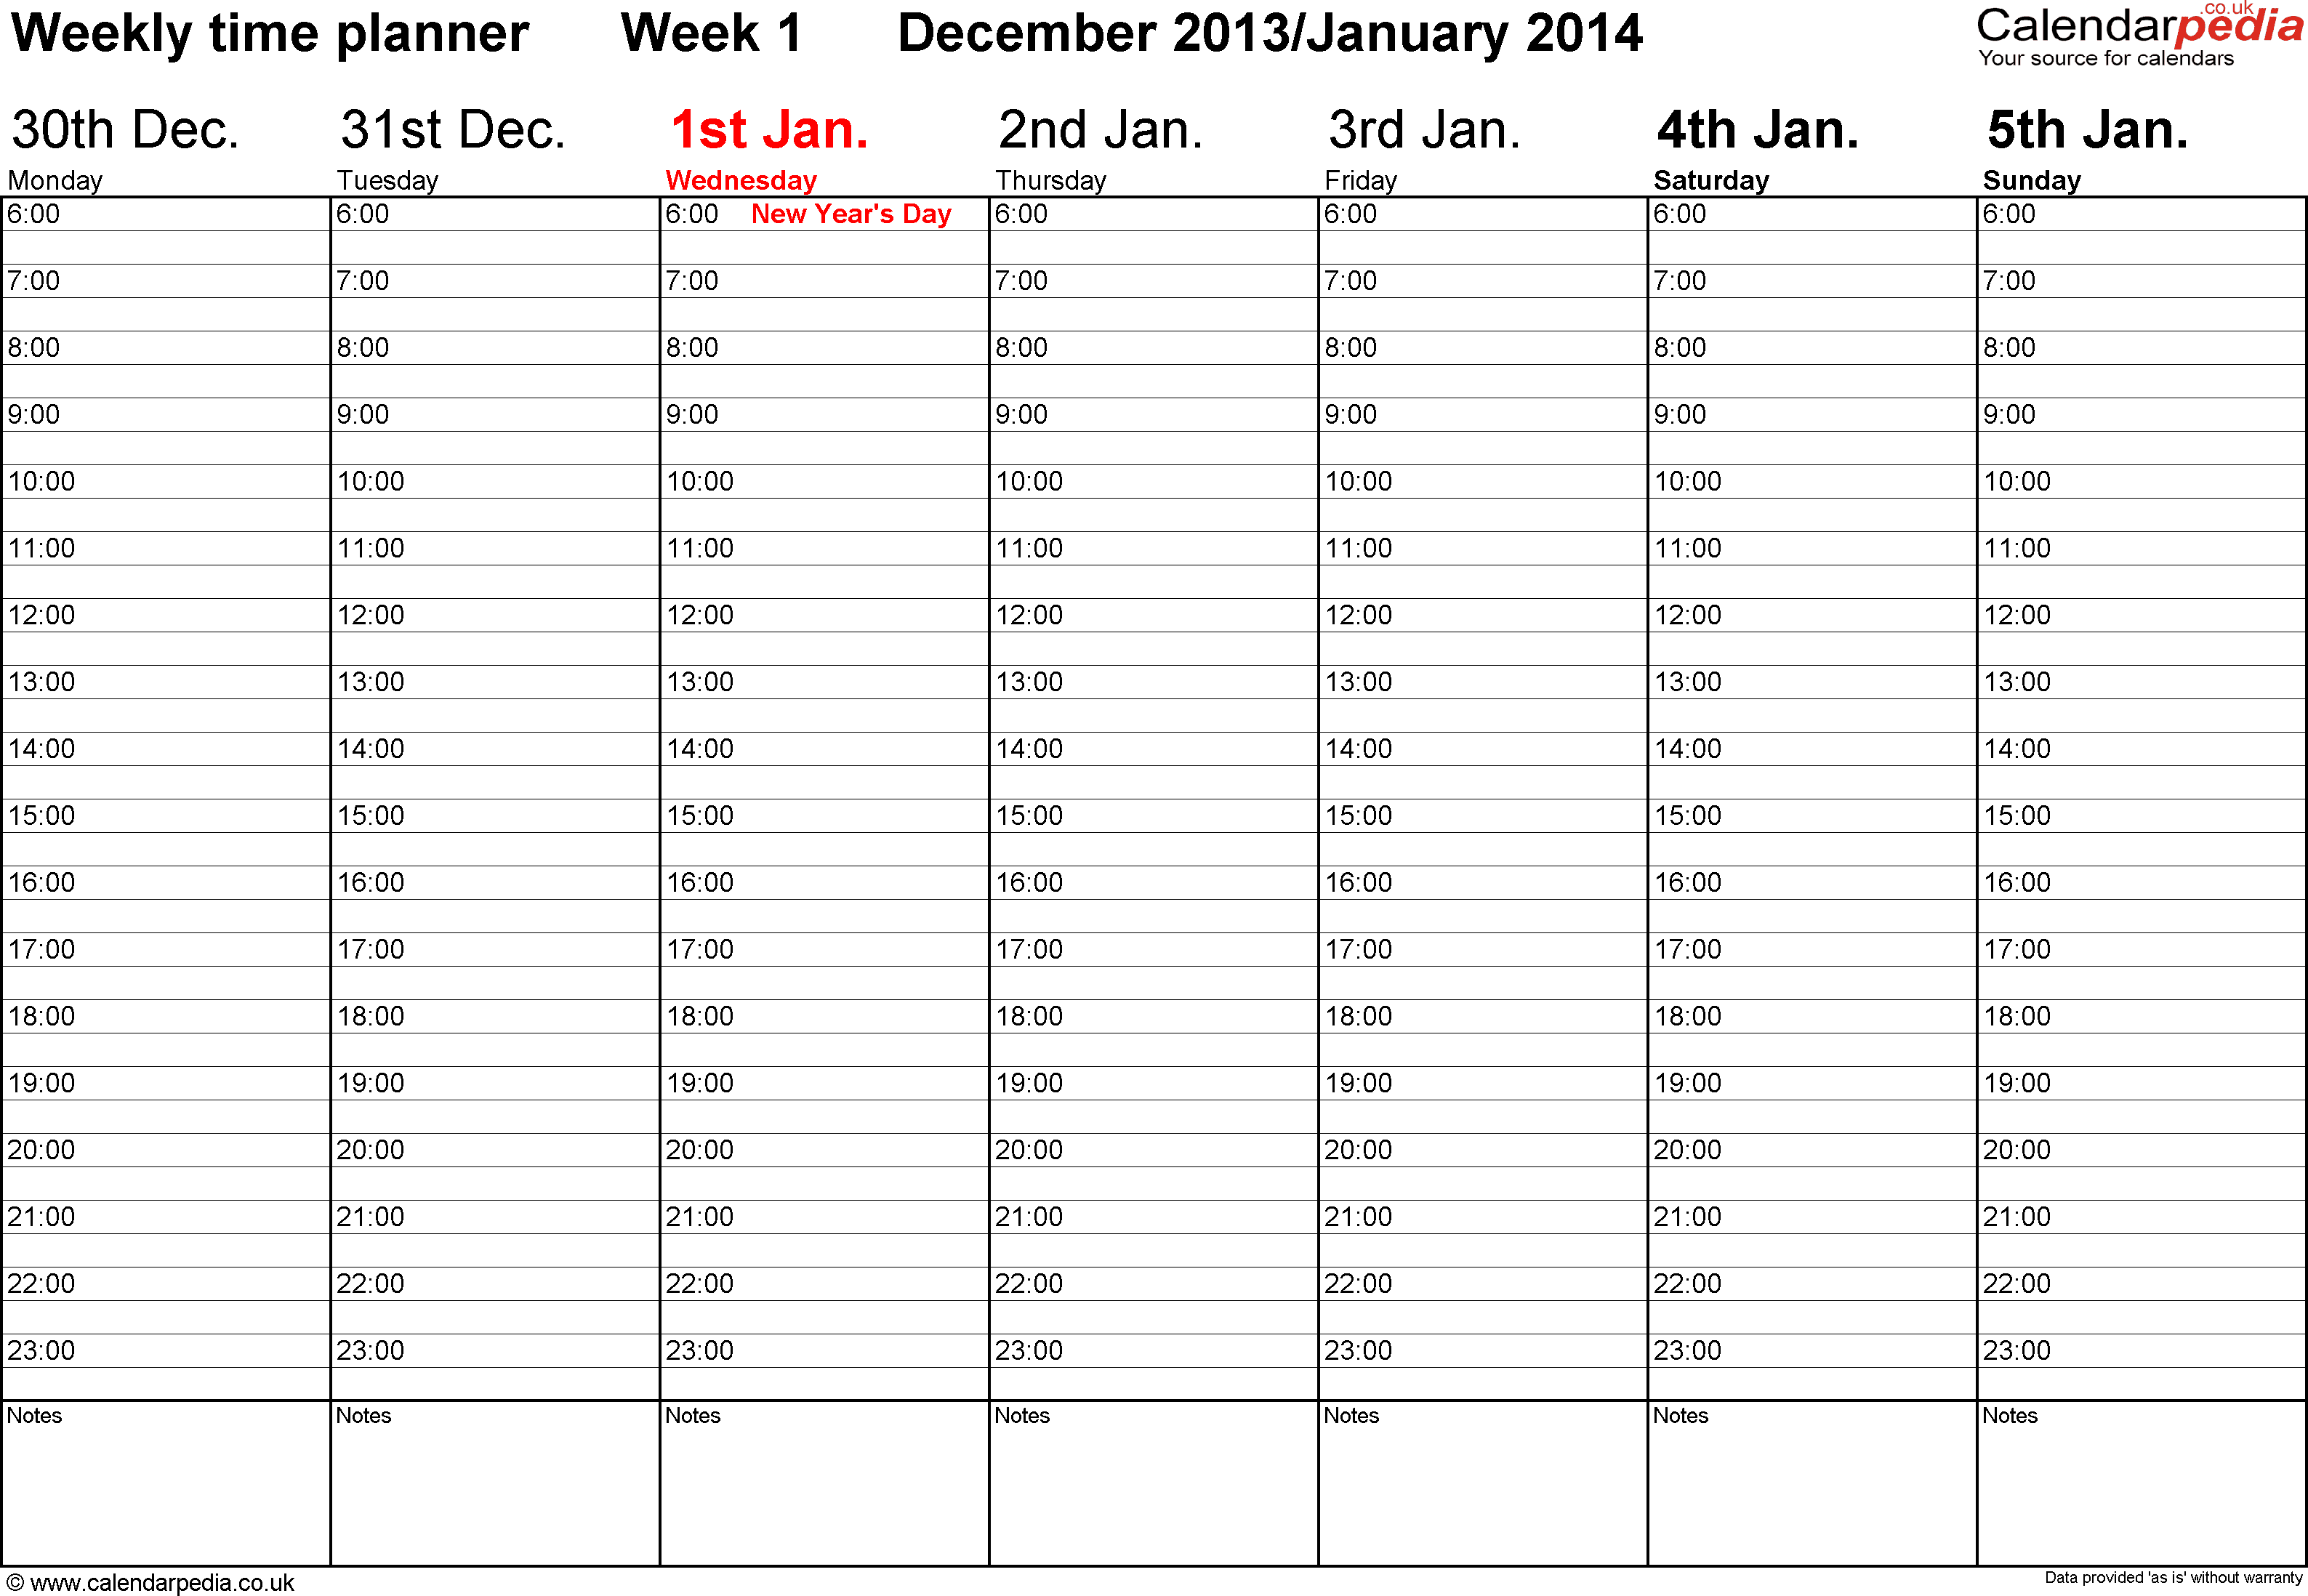 Weekly calendar 2014 UK - free printable templates for Excel